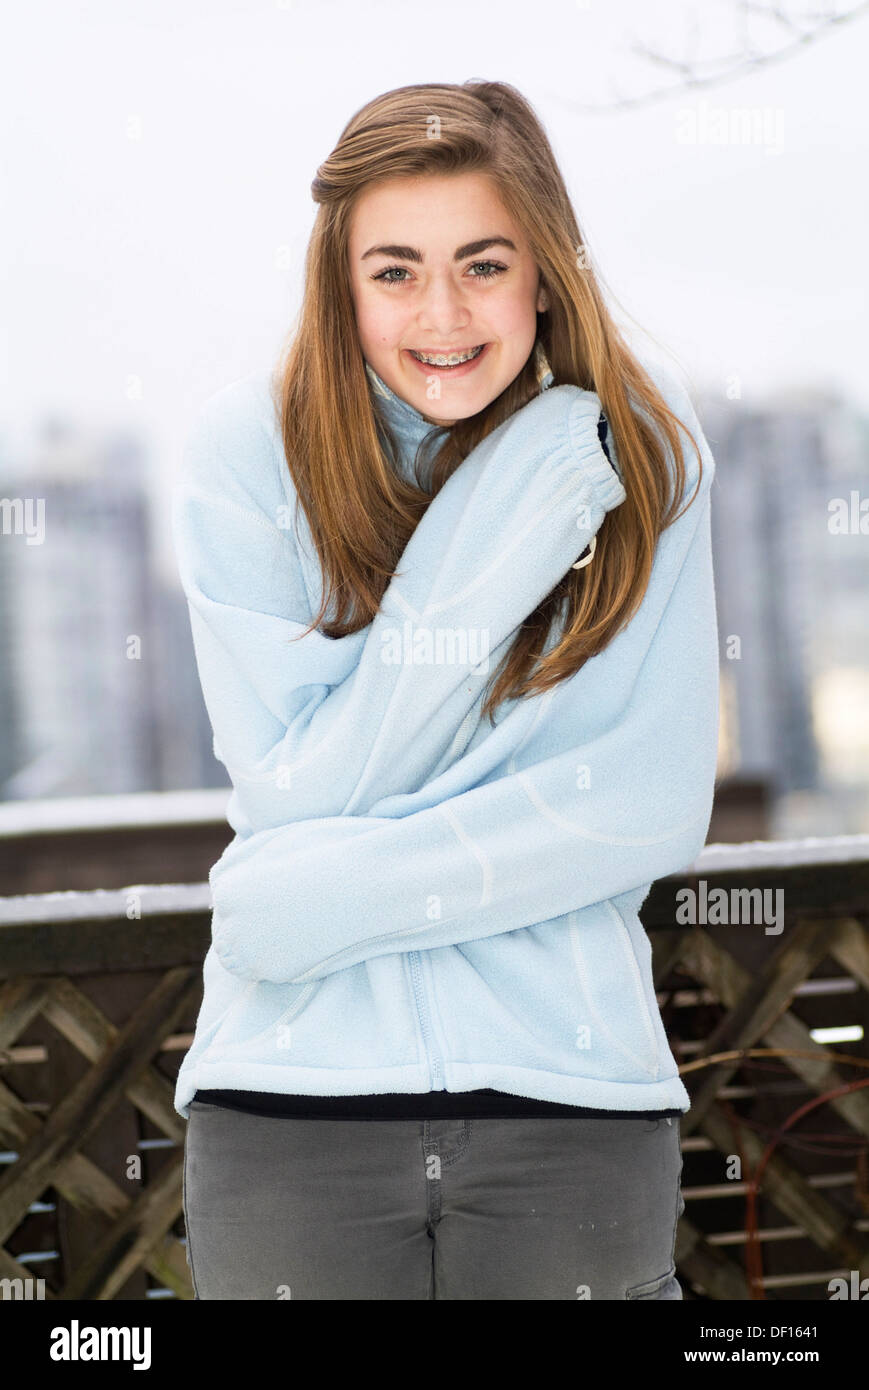 A 15 Year Old Girl, Outdoors, Smiling Stock Photo